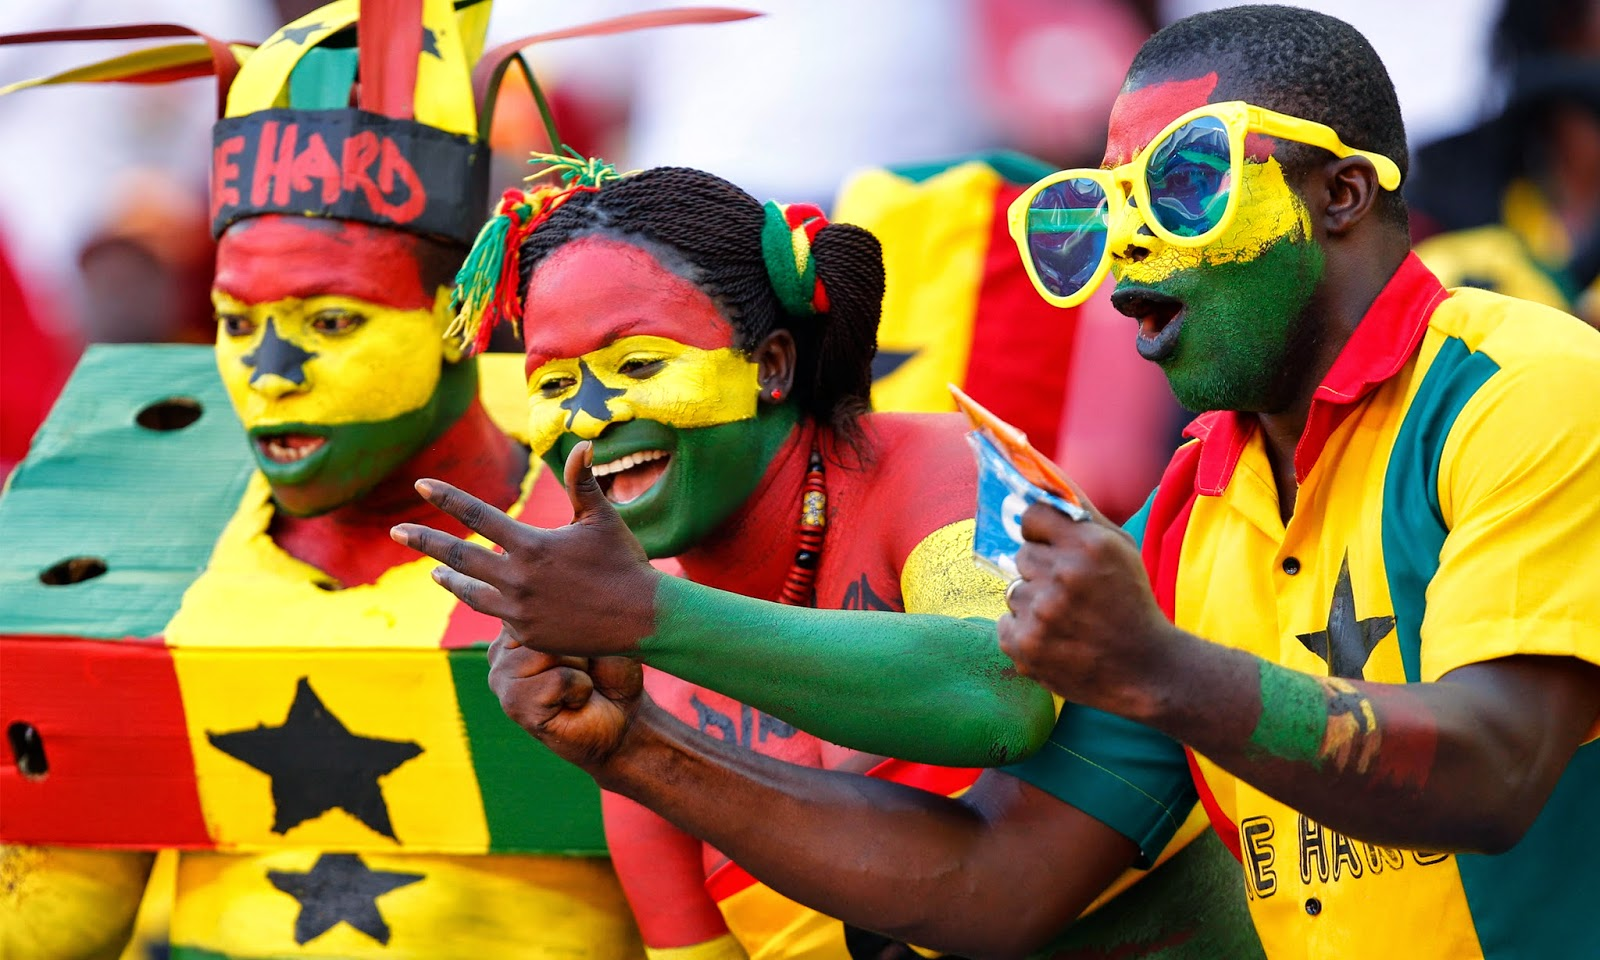 FIFA World Cup 2014 Fans